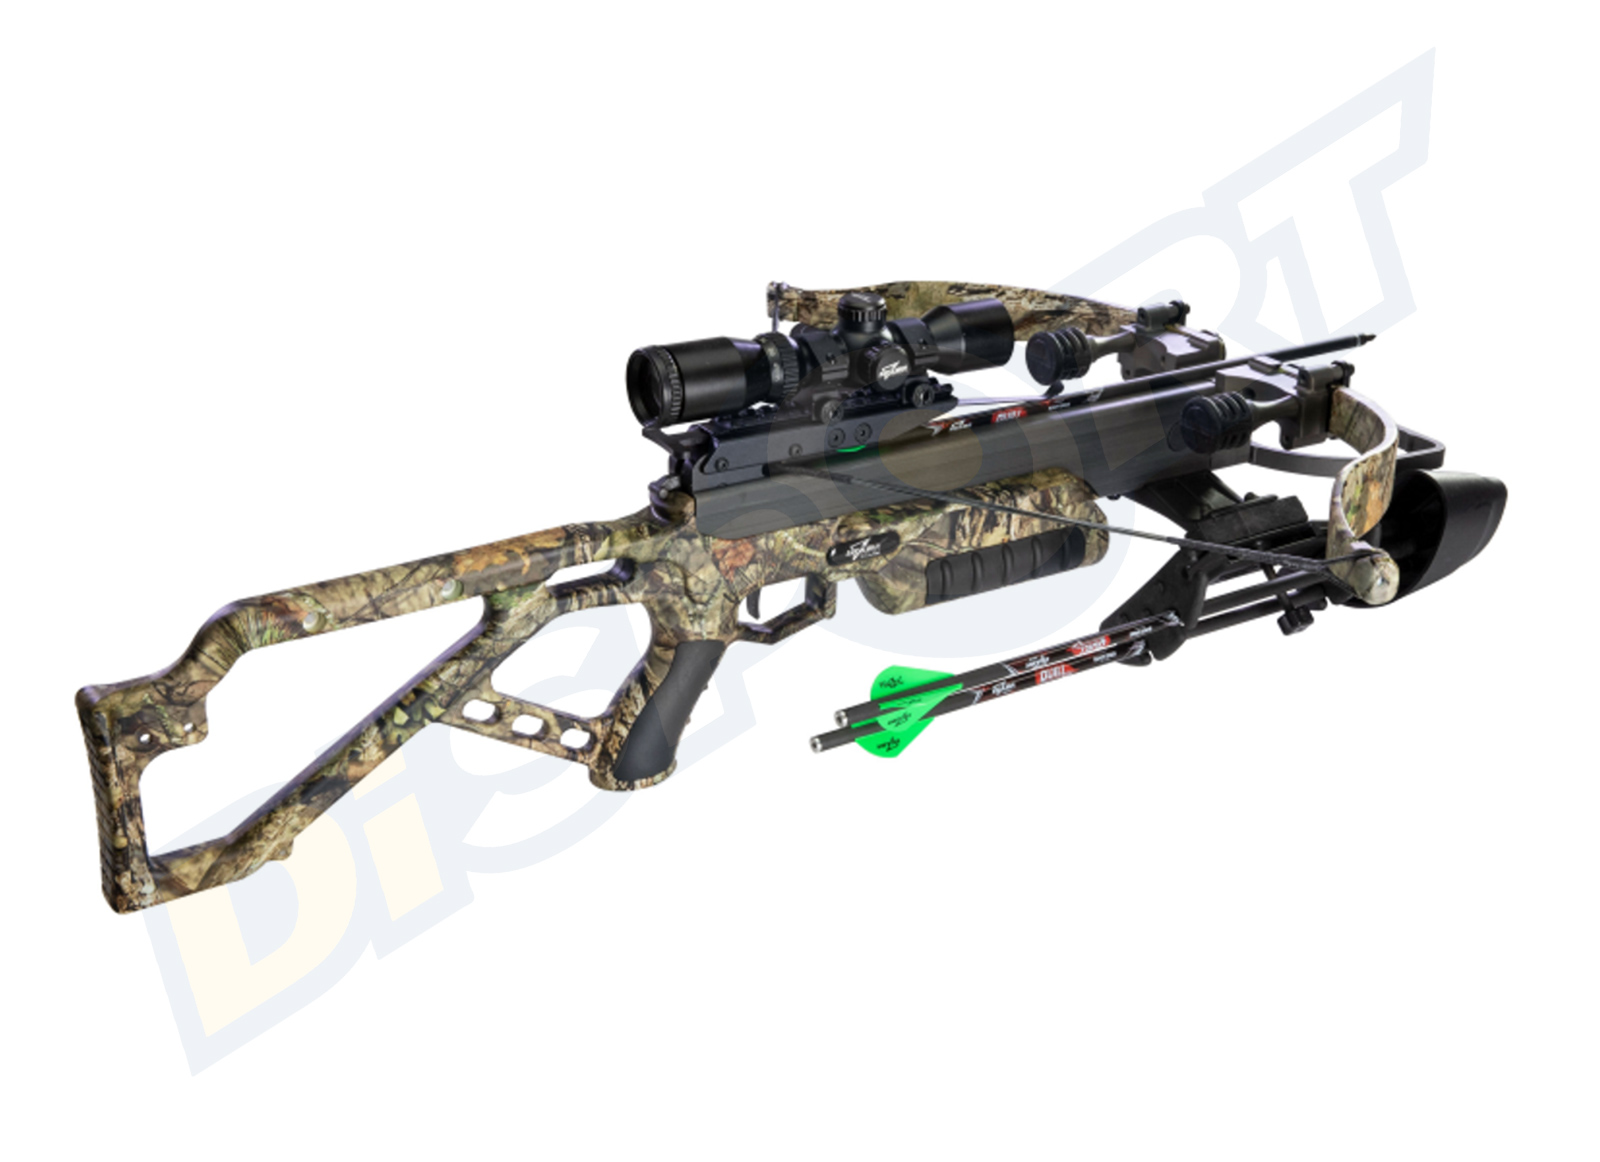 EXCALIBUR BALESTRA MICRO AXE 340 PACKAGE MOSSY OAK COUNTRY